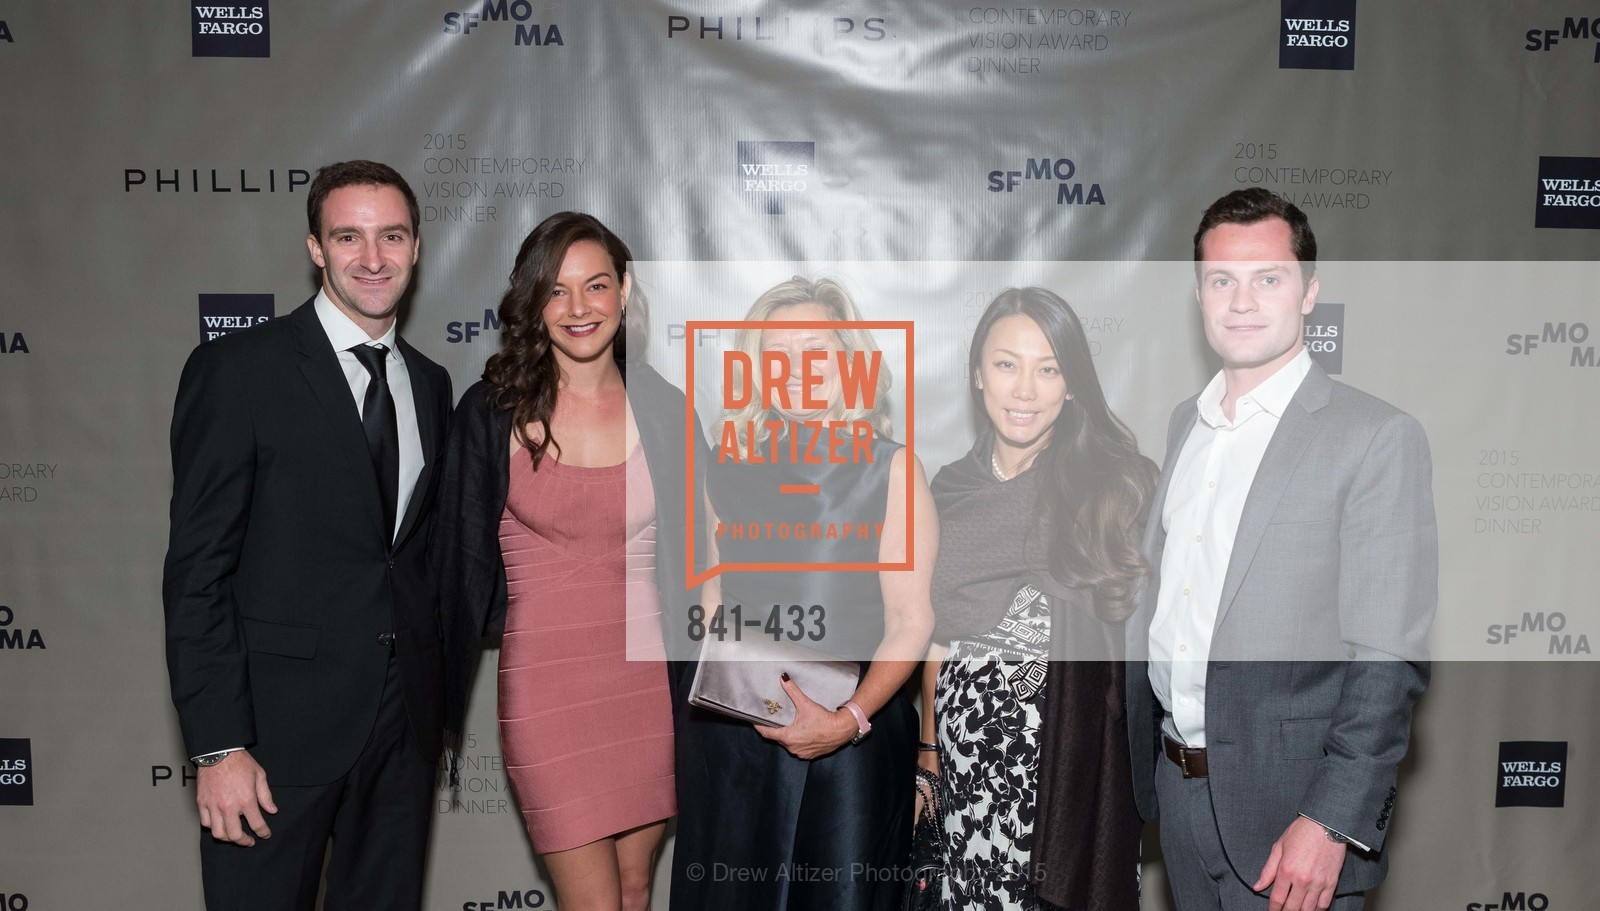 Cedric Schwab, Talia Touboul, Florence Buatois, Elena Gao, Matthew Decandia, SFMOMA Contemporary Vision Award, Regency Ballroom. 1300 Van Ness, November 3rd, 2015,Drew Altizer, Drew Altizer Photography, full-service agency, private events, San Francisco photographer, photographer california